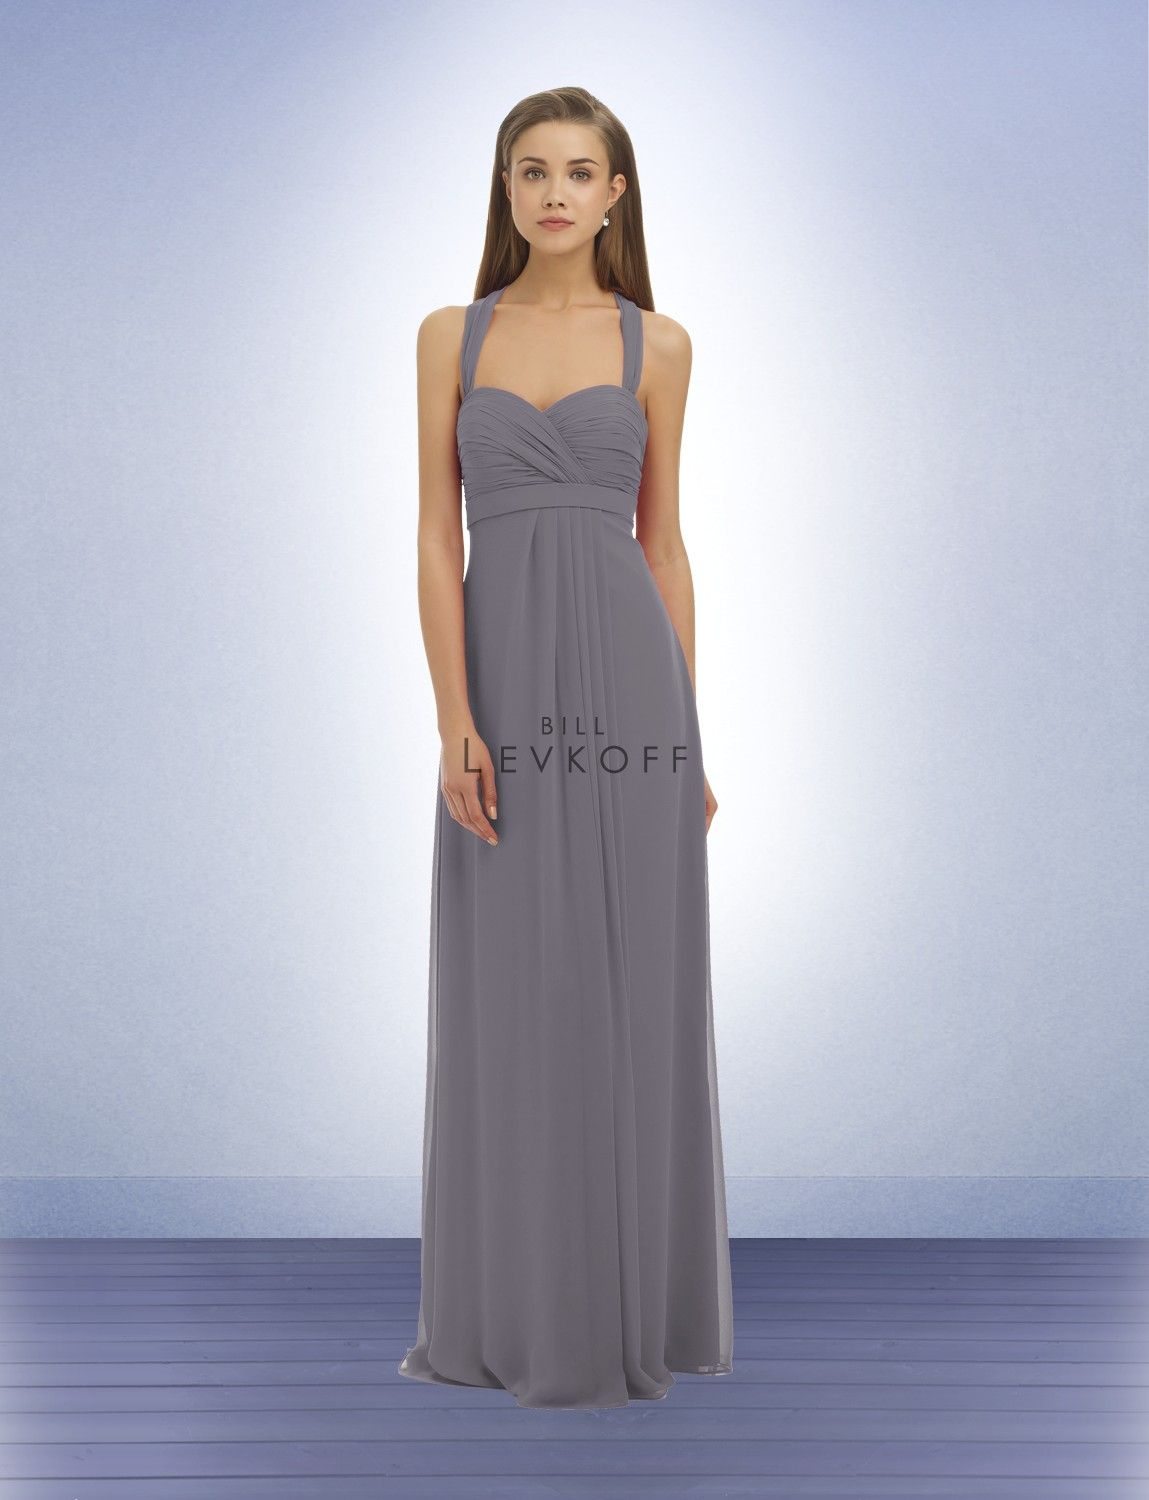 Bridesmaid dress style bill levkoff in pewter color winter